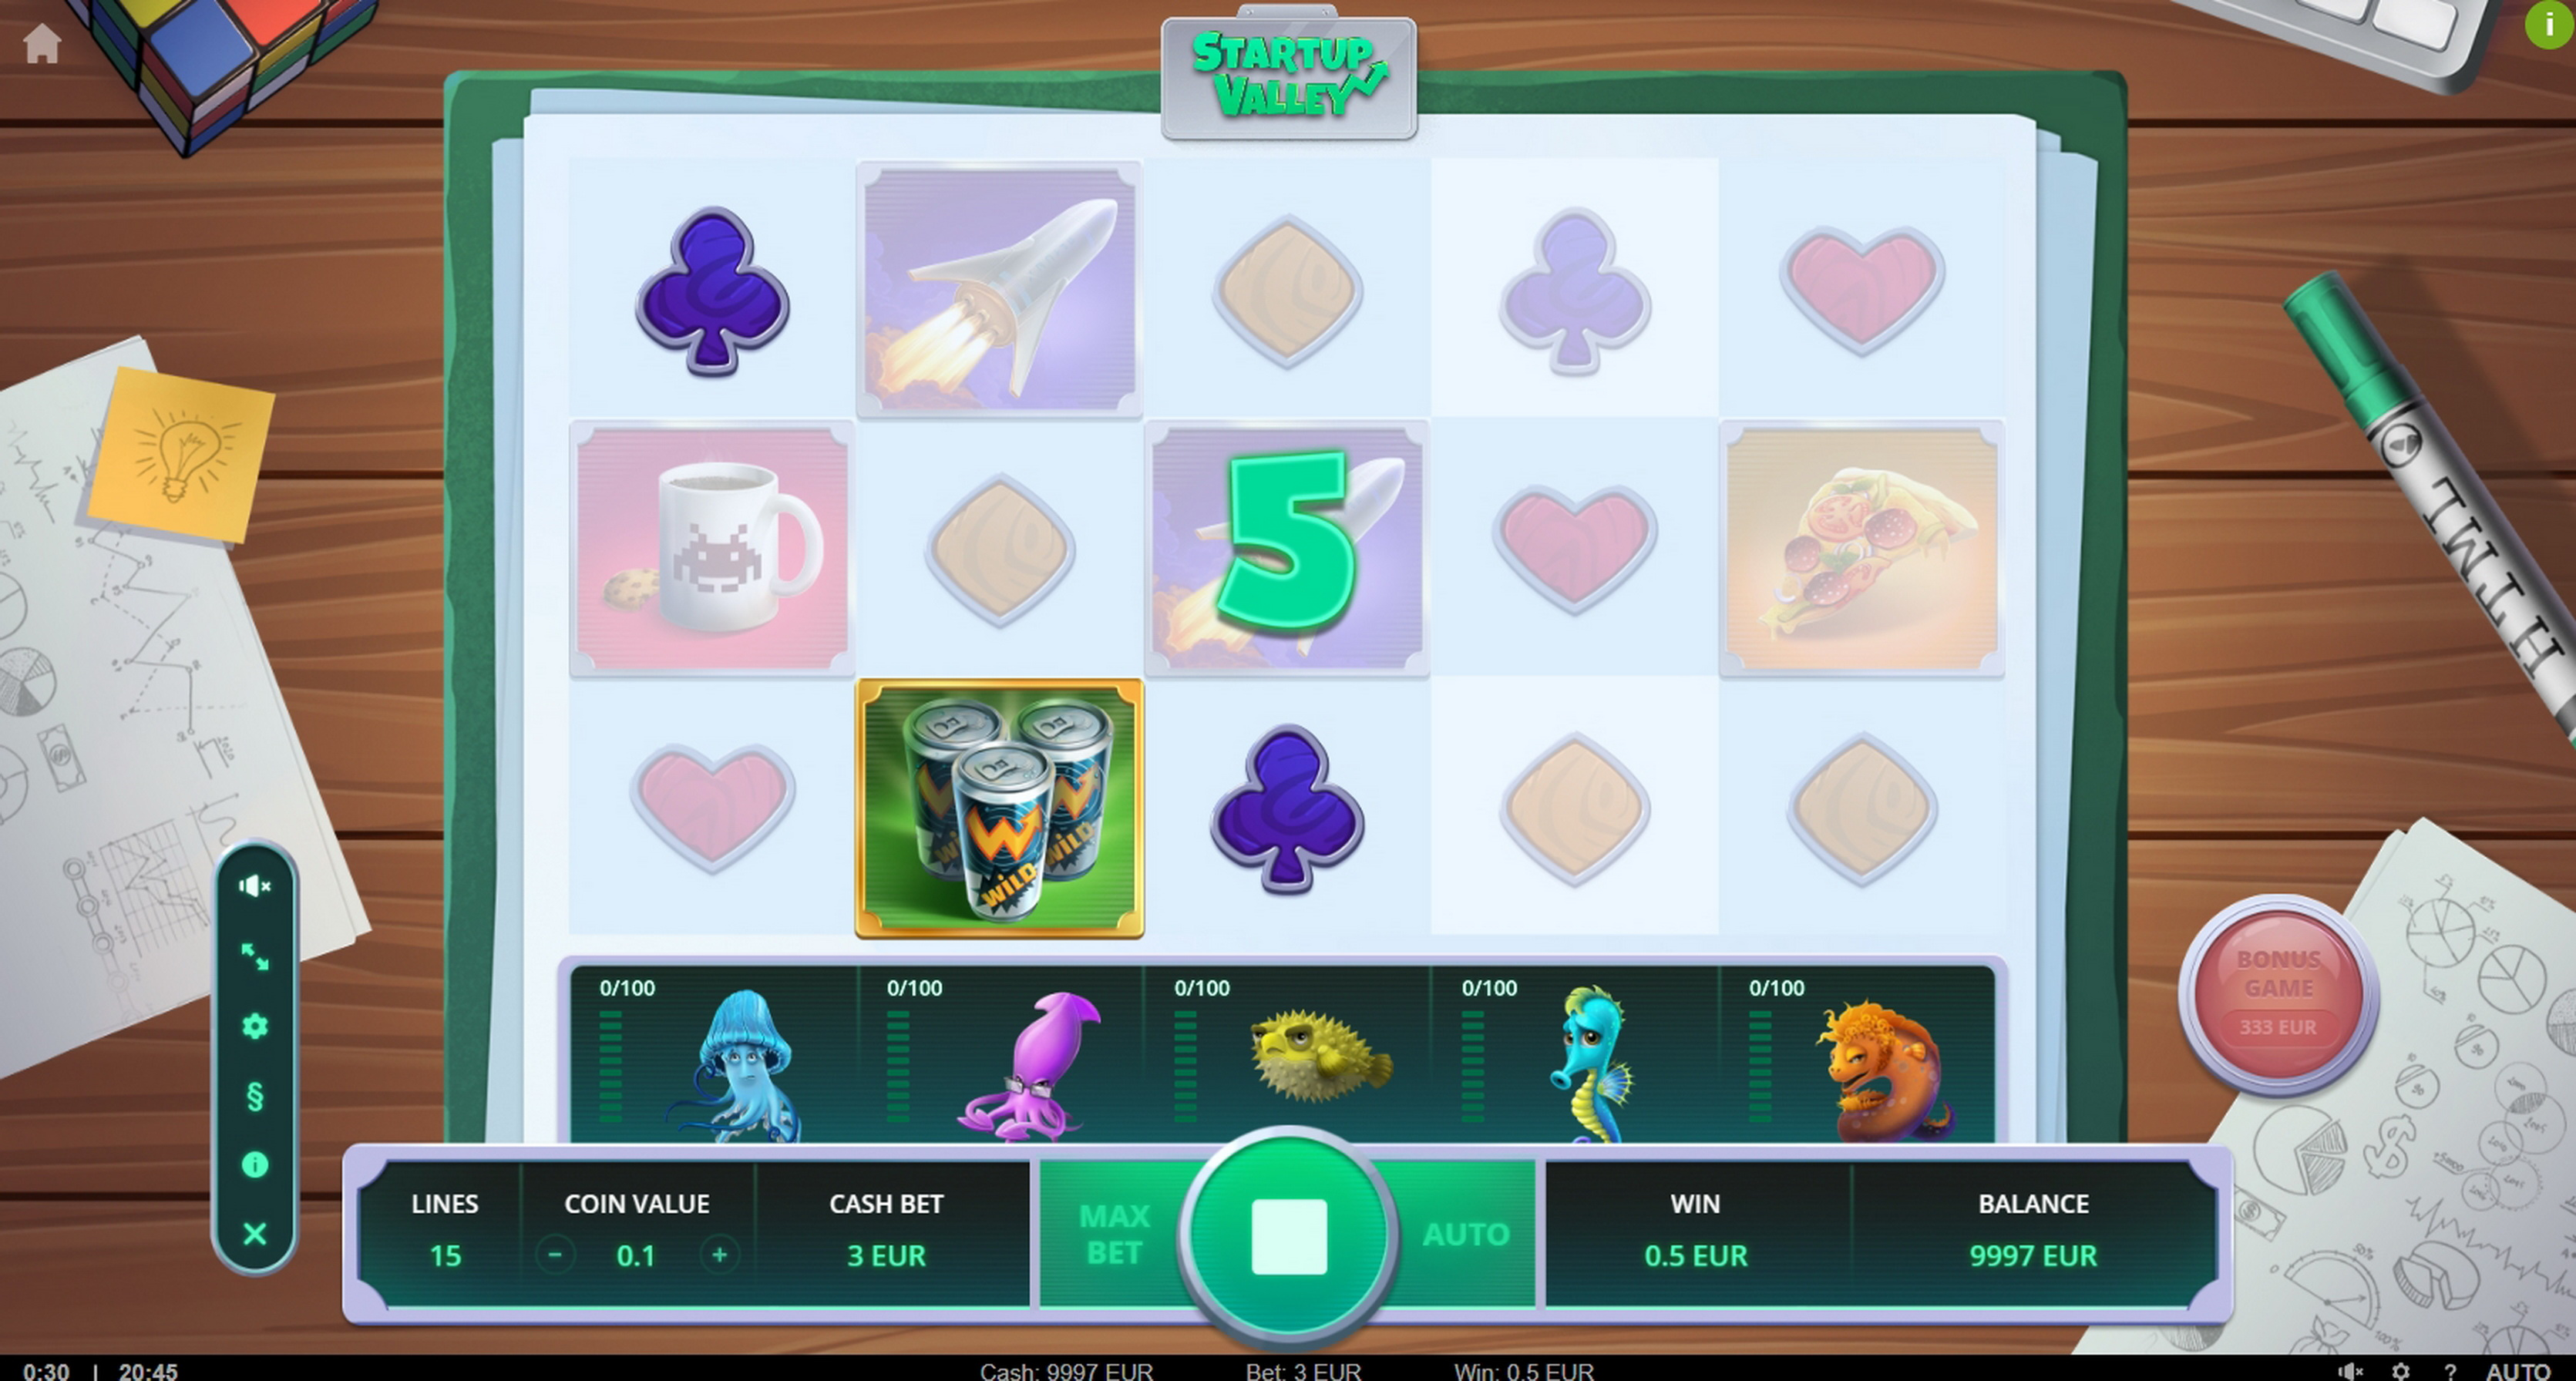 Win Money in Startup Valley Free Slot Game by TrueLab Games